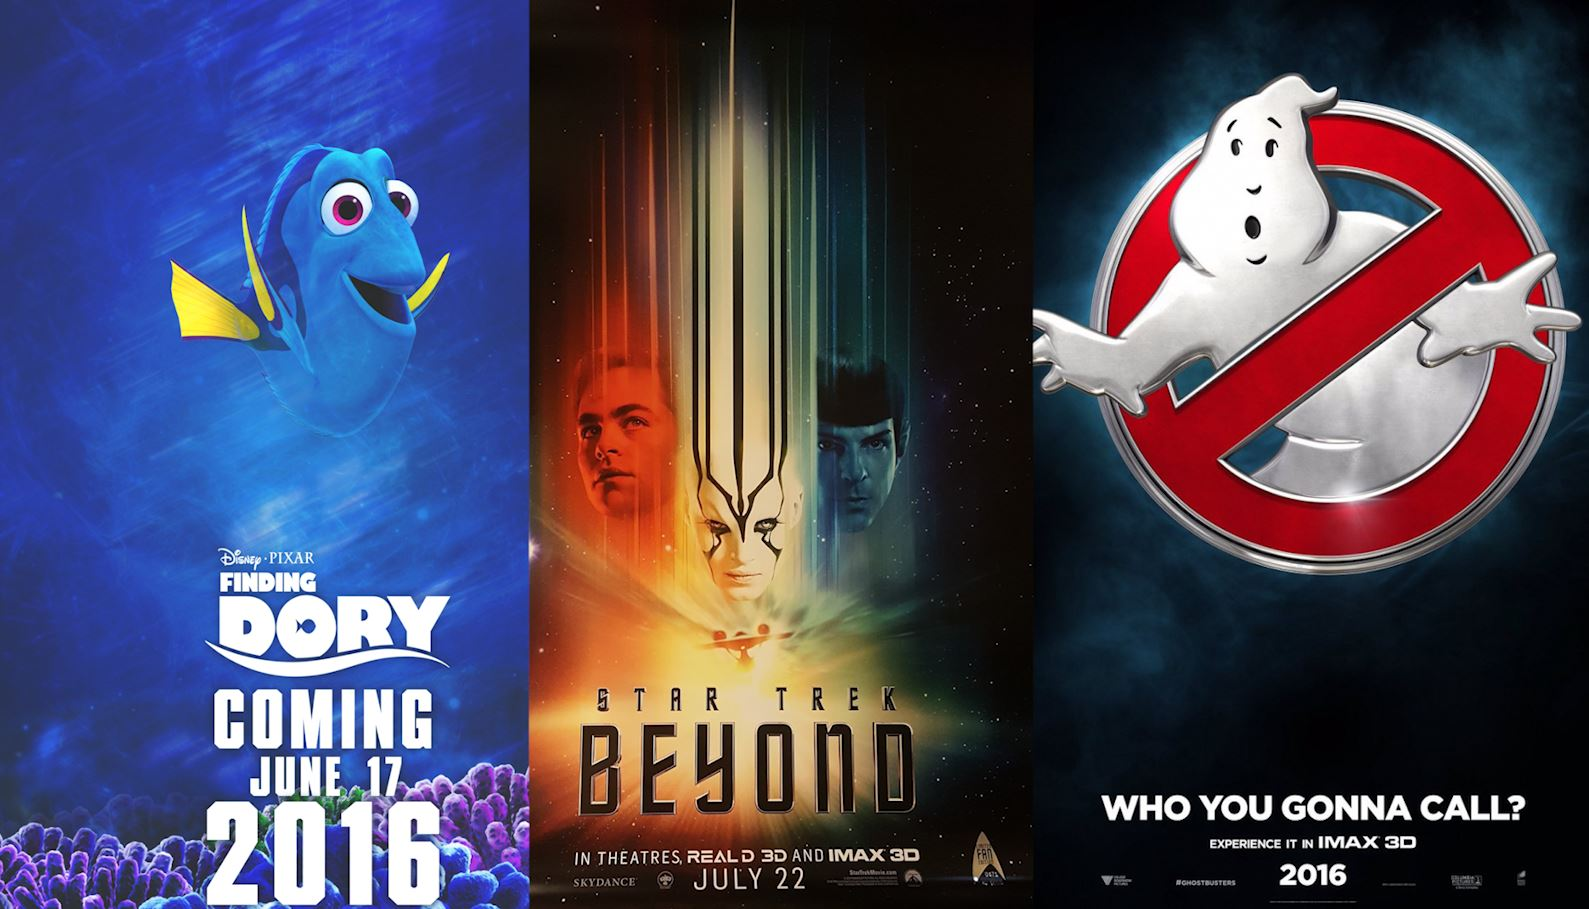 July film preview: Star Trek Beyond, Ghostbusters and Finding Dory